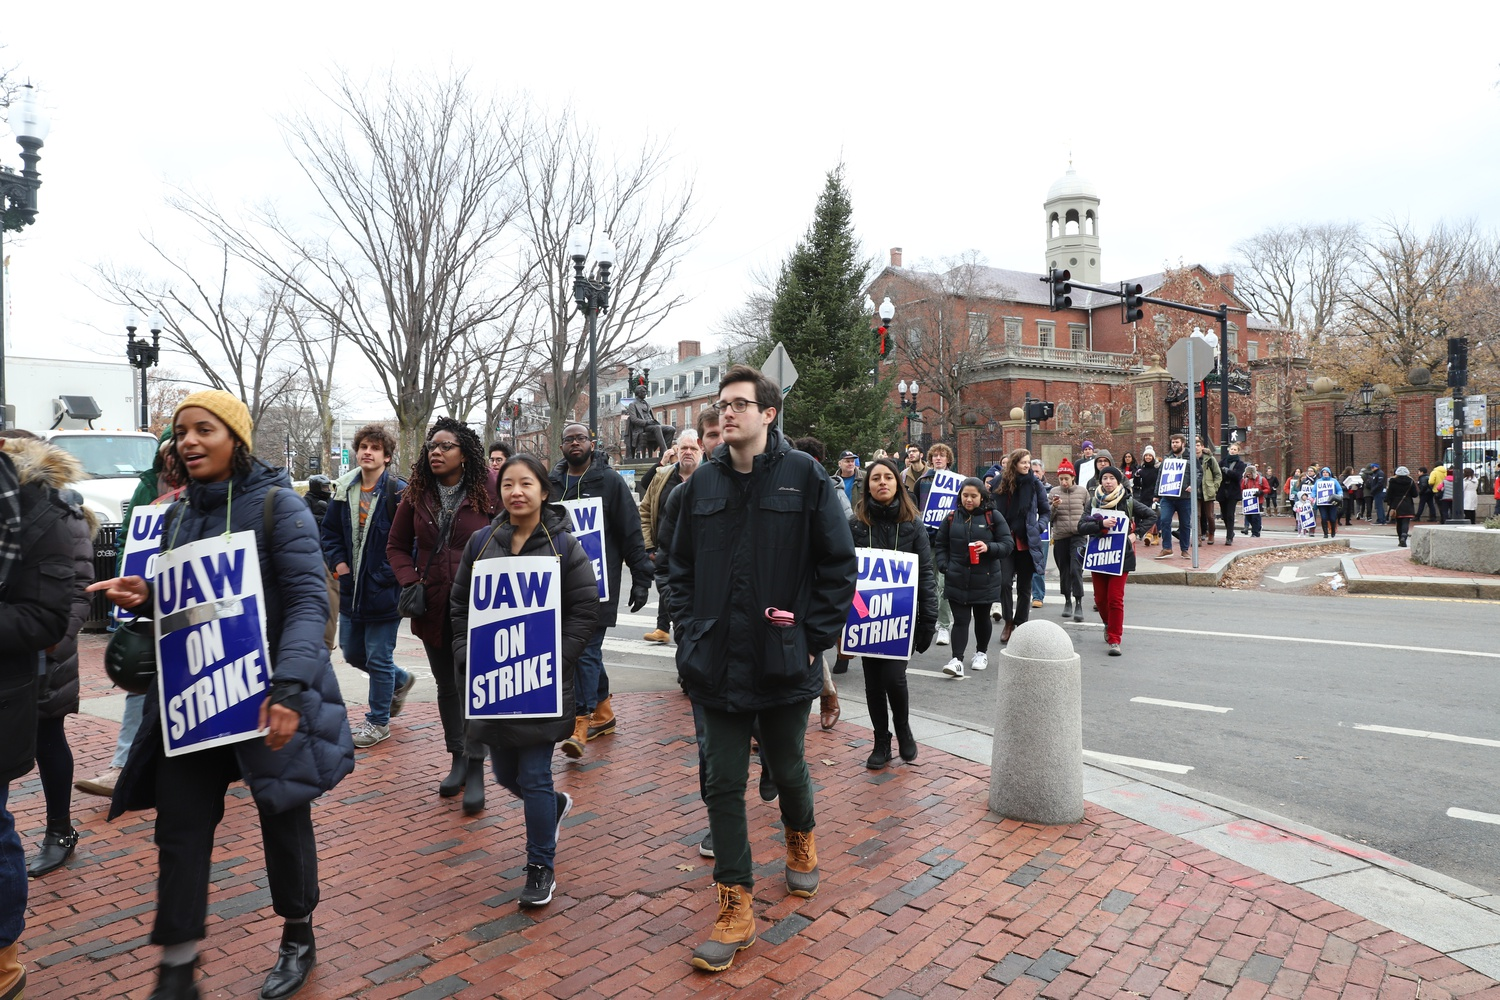 Nearly a week after ending their month-long strike, members of Harvard Graduate Students Union-United Automobile Workers said they are divided over the decision to return to work on Jan. 1.